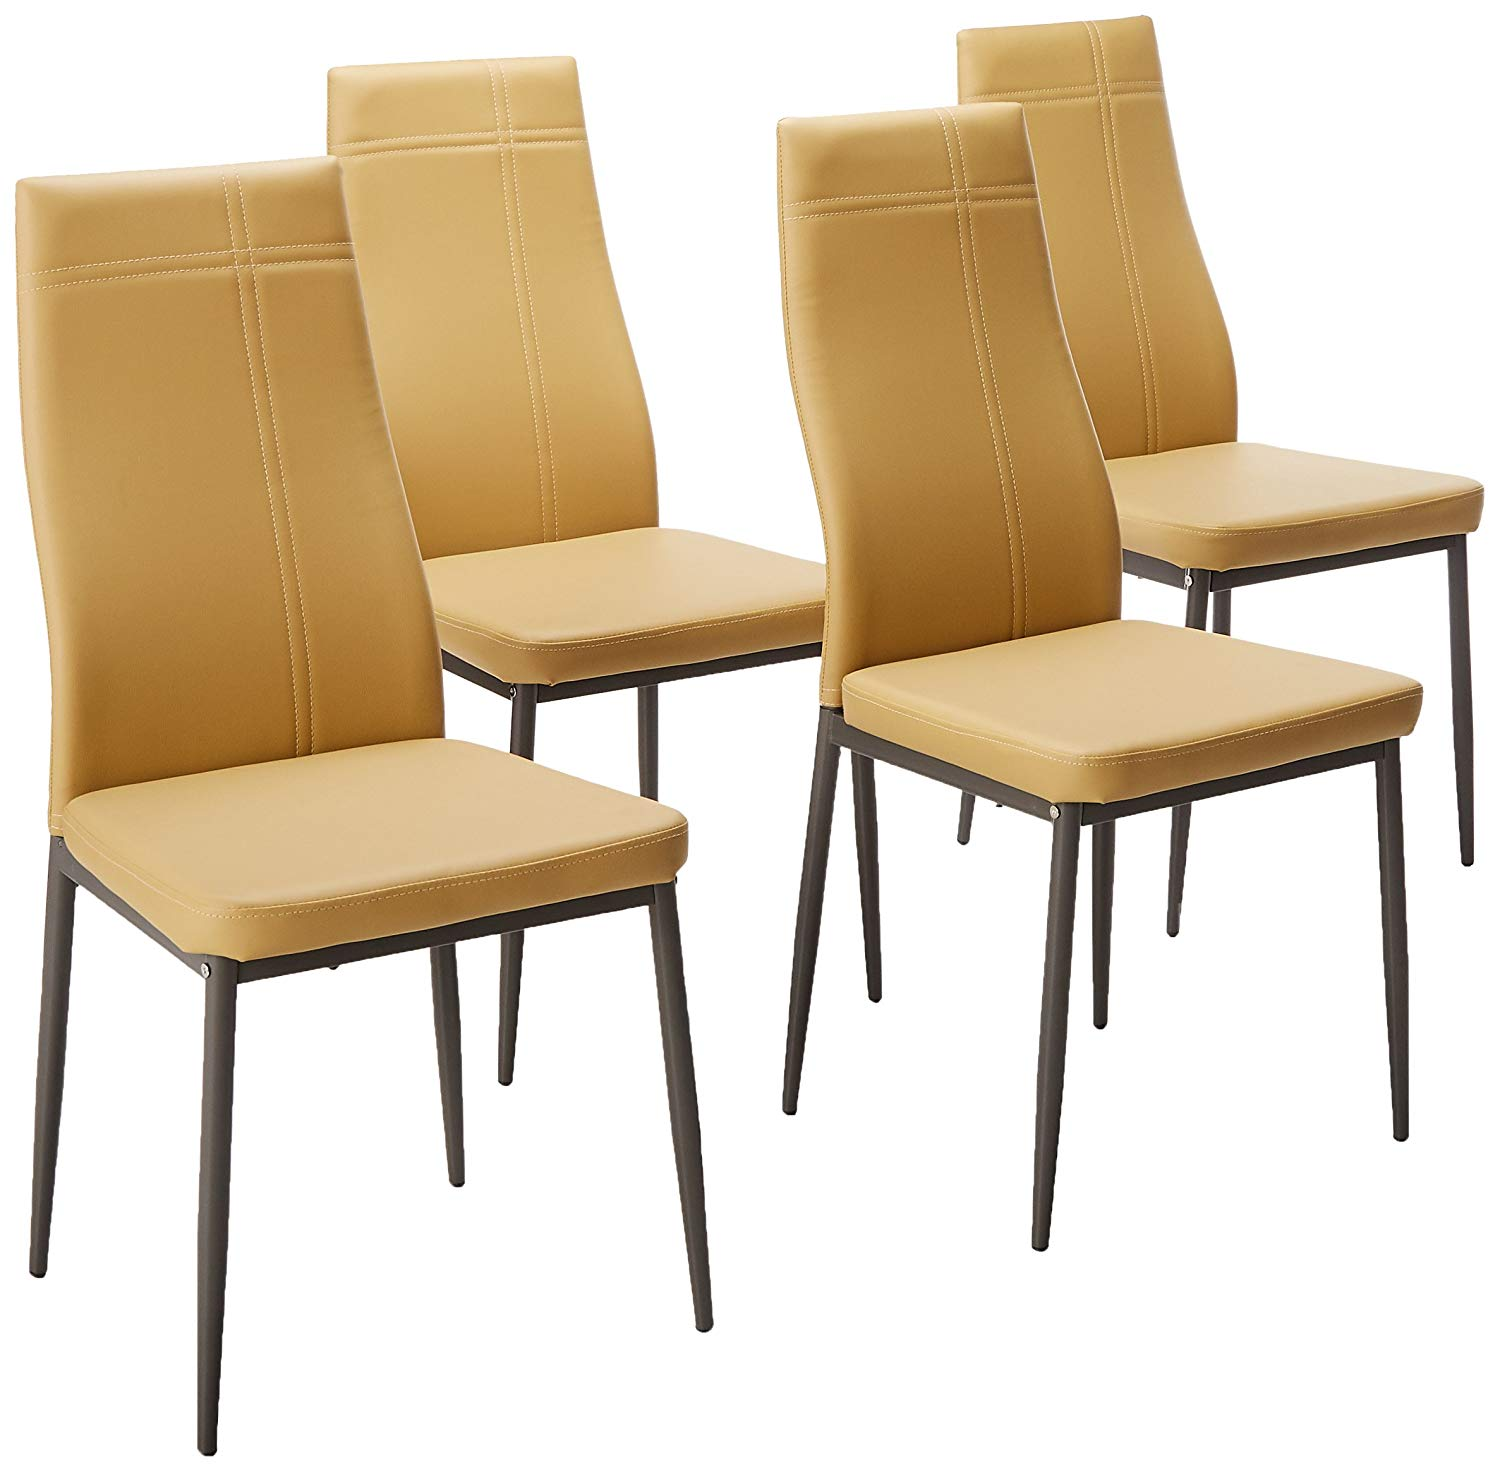 Bri Kitchen Dining Chairs, Light Brown Faux Leather & Metal Frame, Modern (Set Of Four)